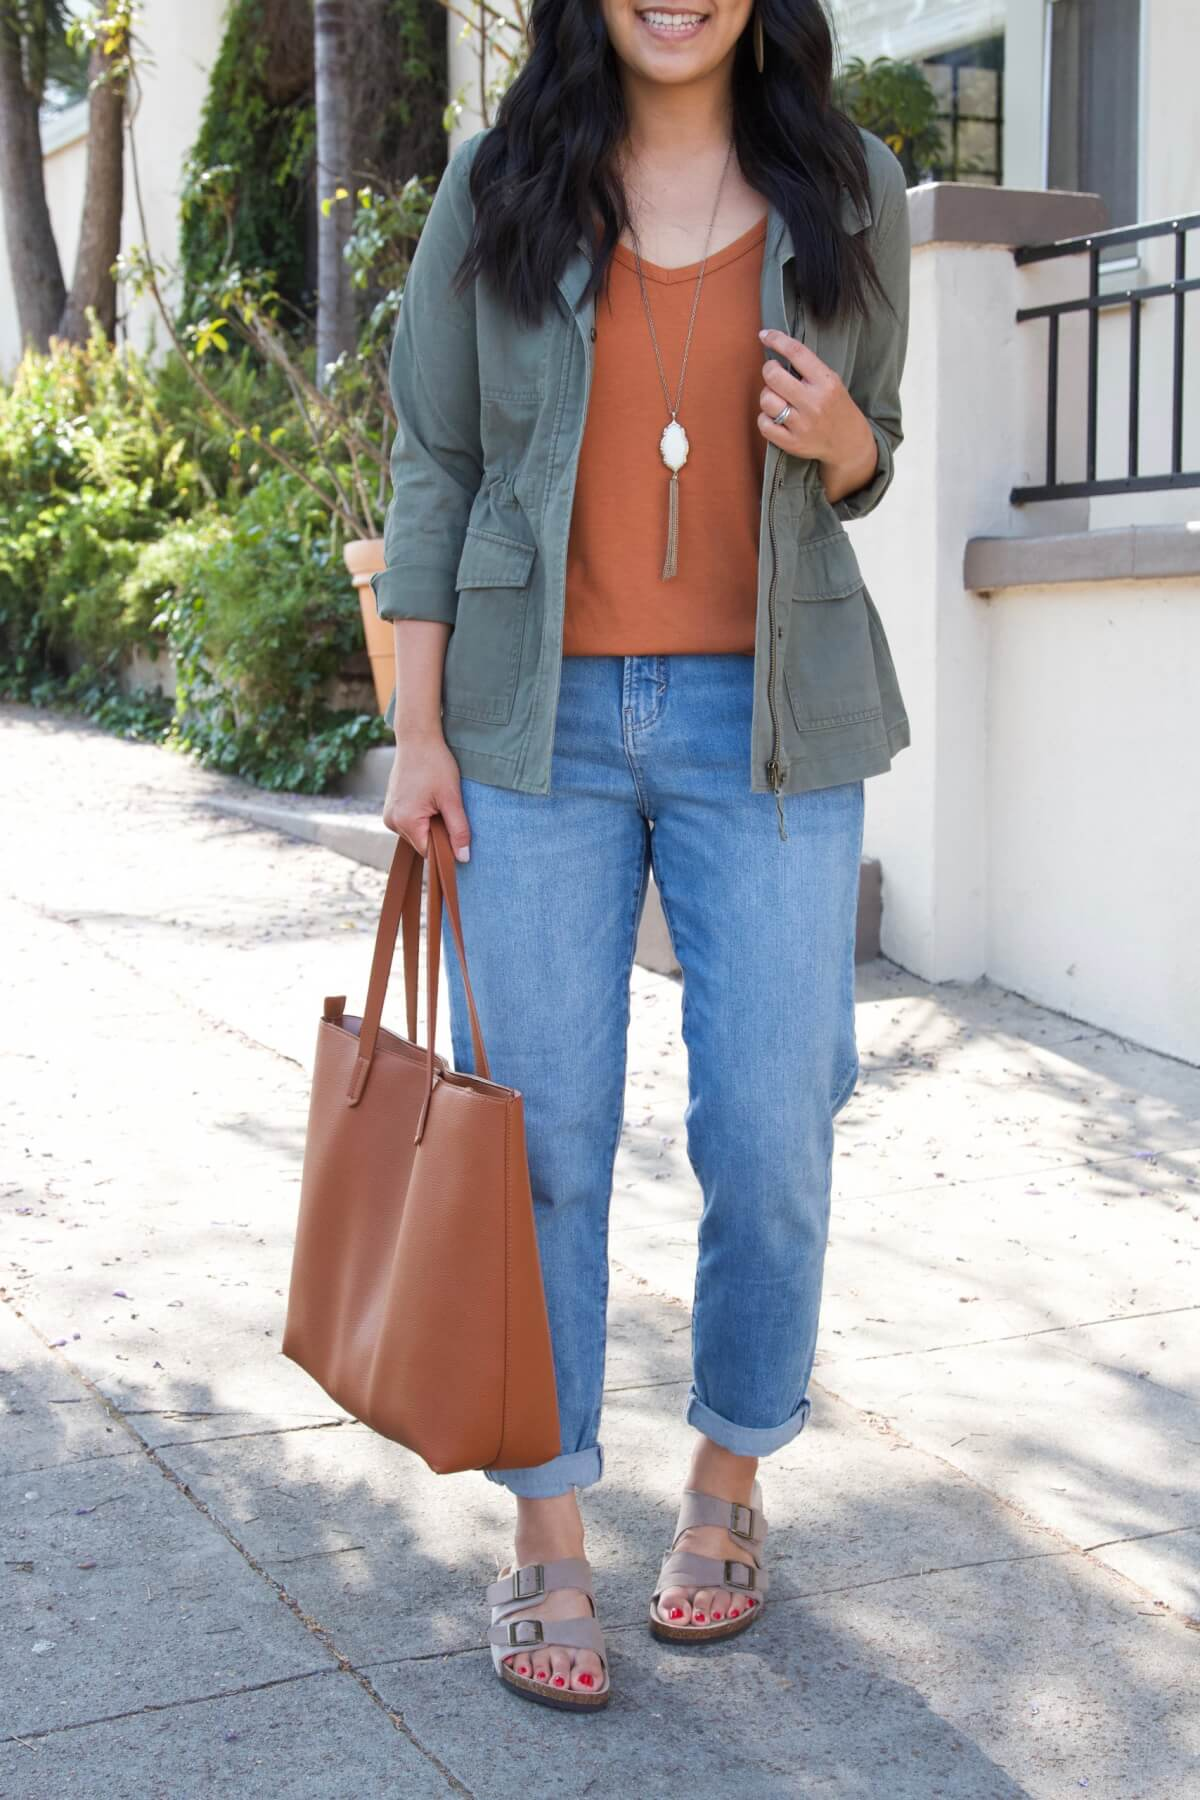 Casual Fall Outfit Summer to Early Fall Transition: olive utility jacket + pumpkin orange top + light denim + taupe birkenstock footbed sandals + pendant necklace + tan tote